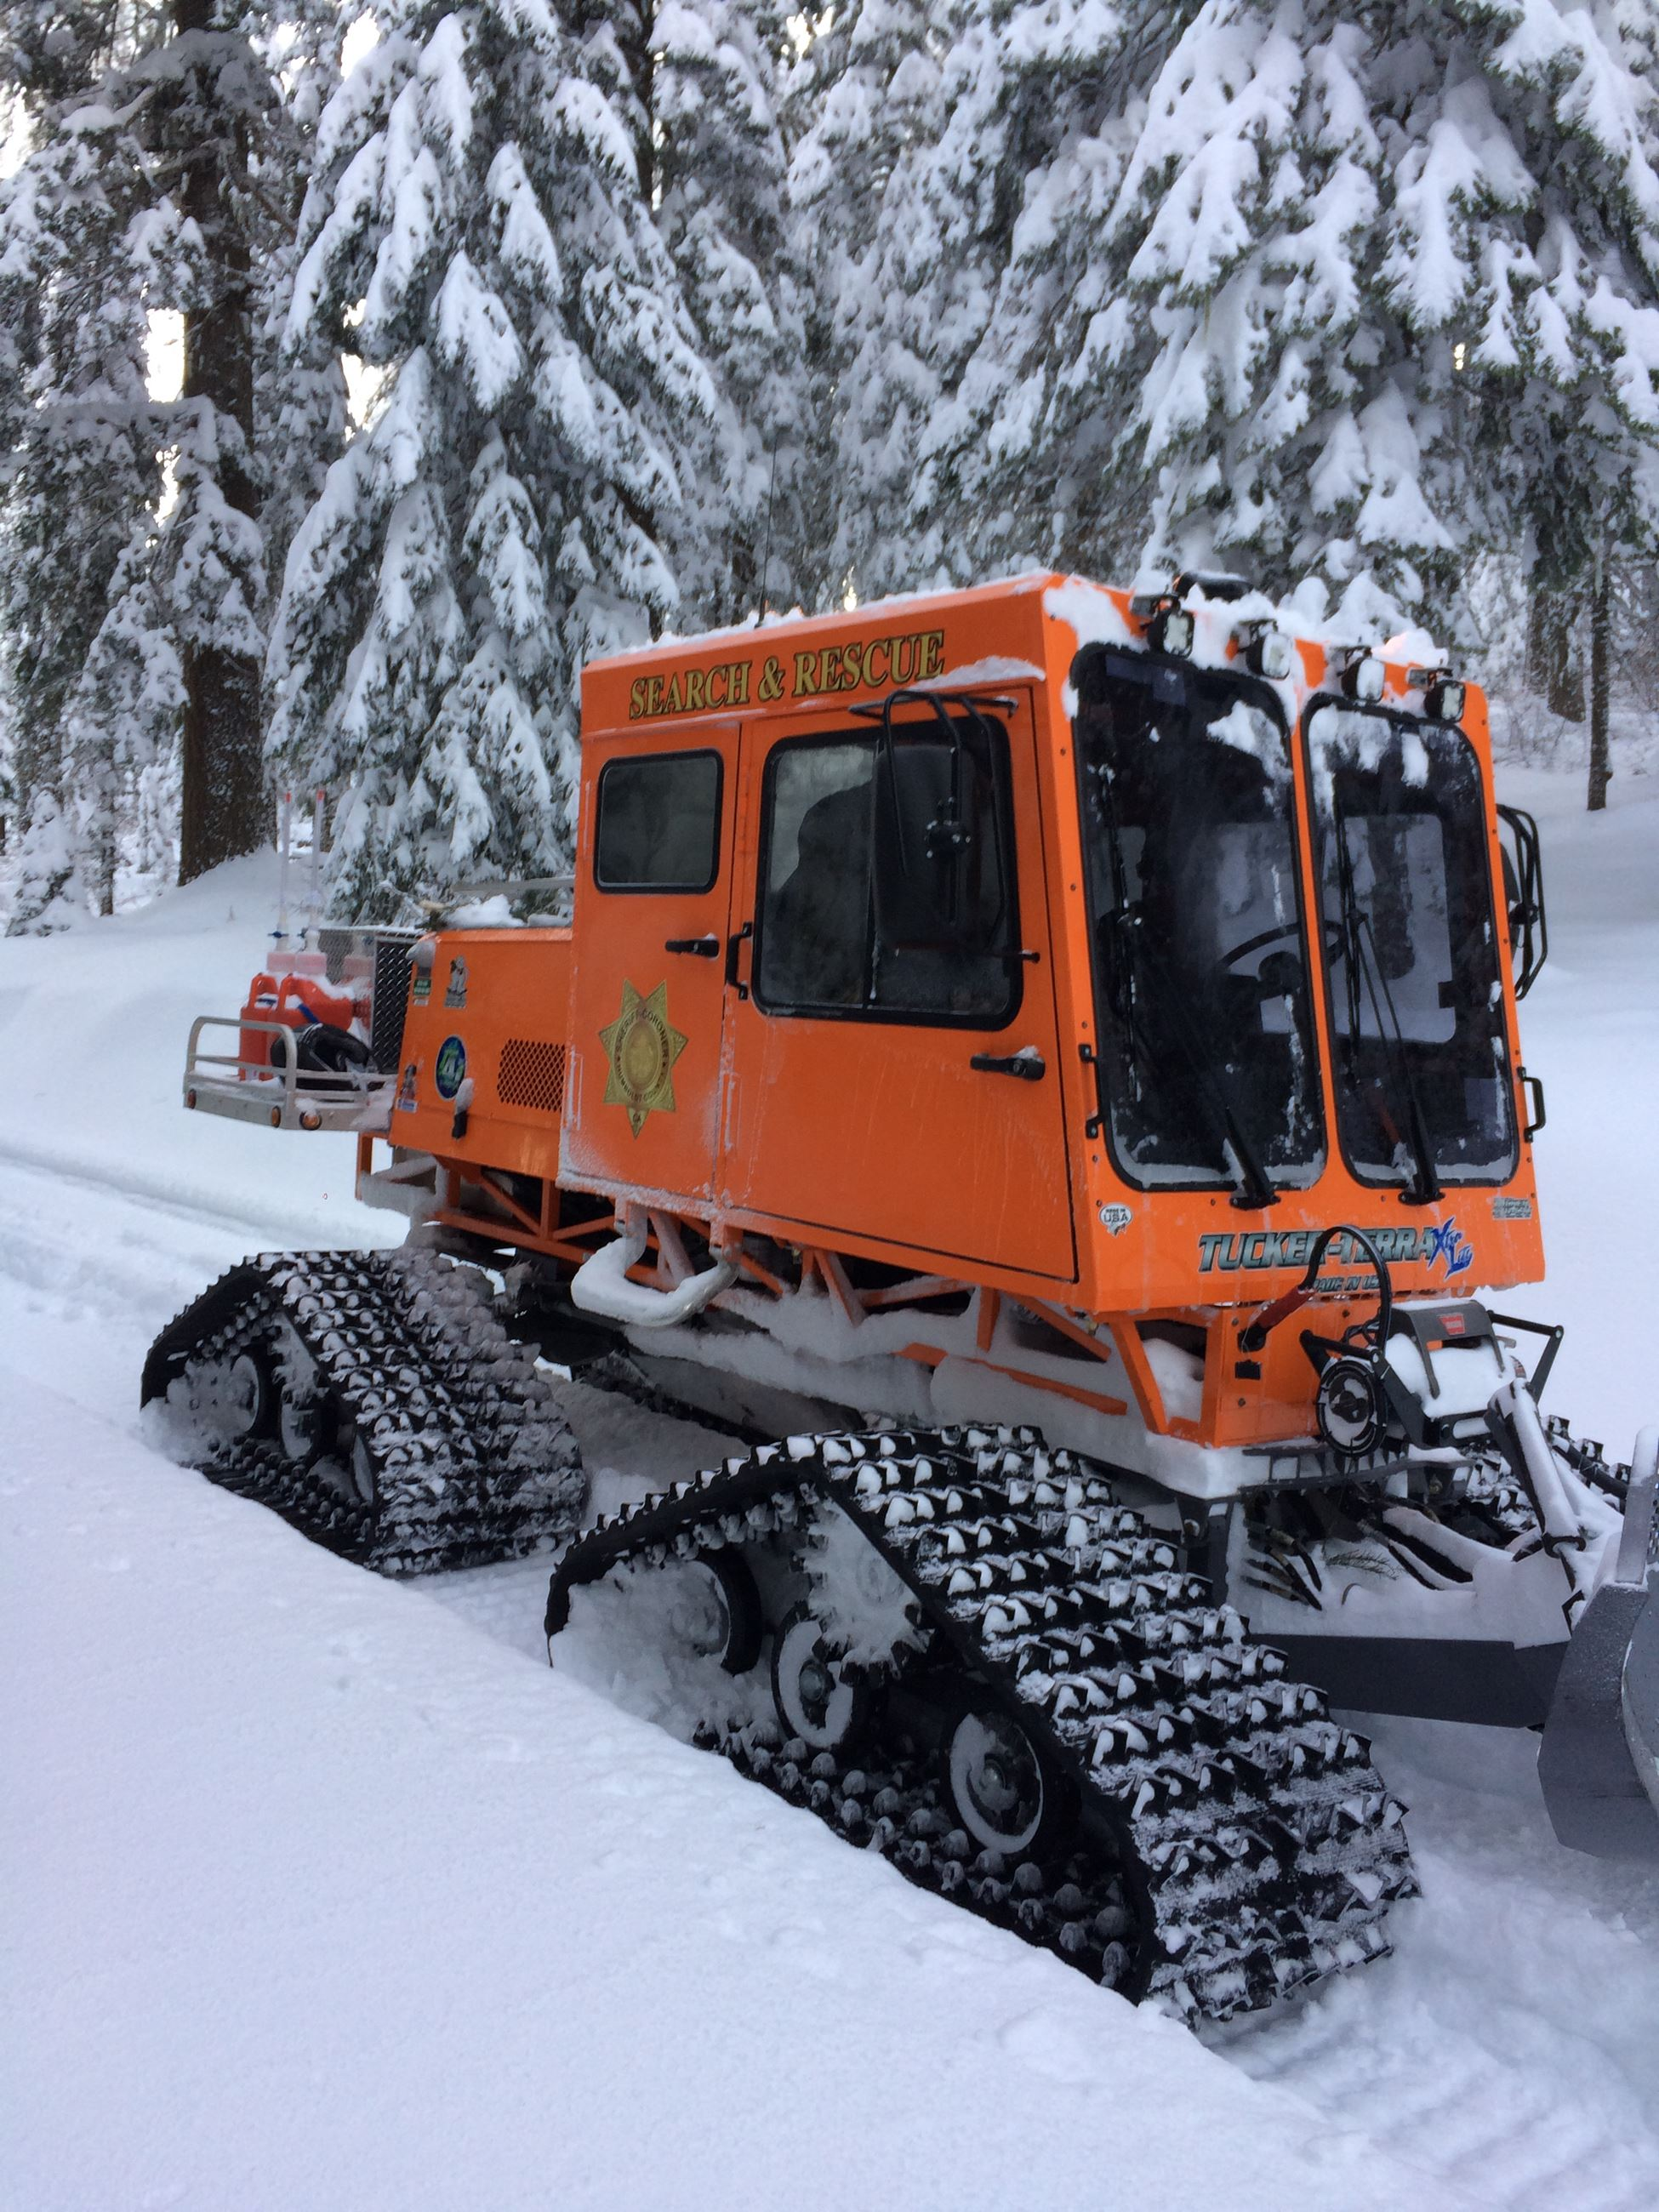 Photo of Sheriff's Sno-Cat rescue vehicle